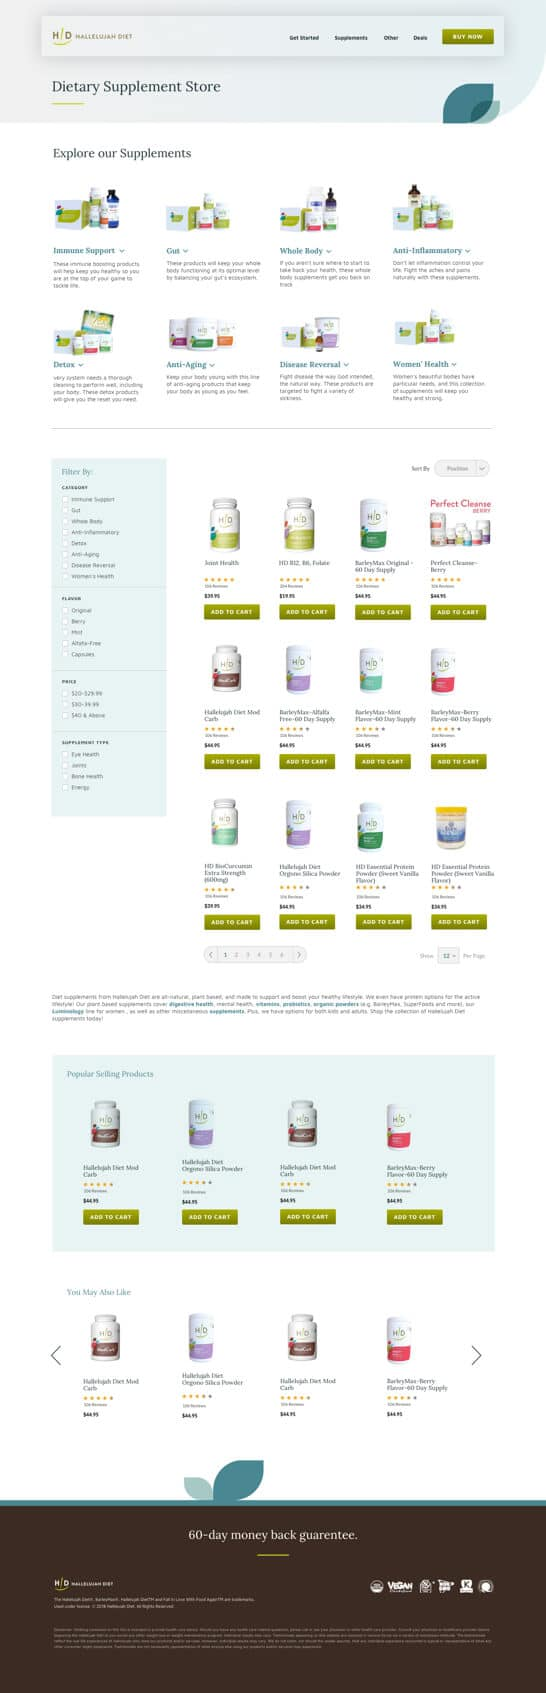 hallelujah diet supplements category page design